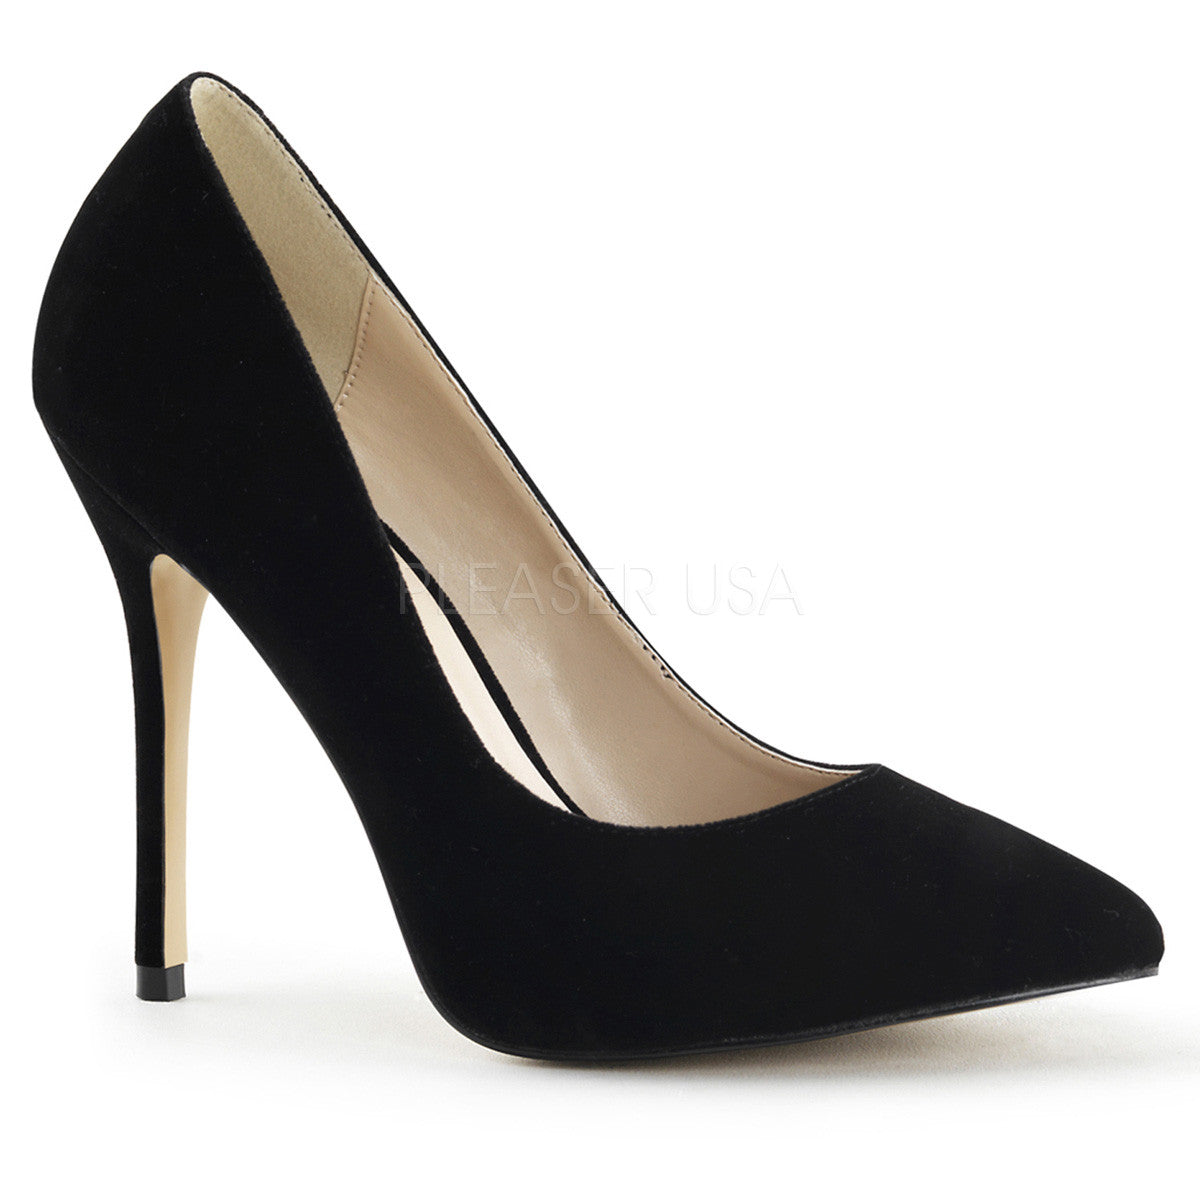 PLEASER AMUSE-20 Black Velvet Pumps - Shoecup.com - 1